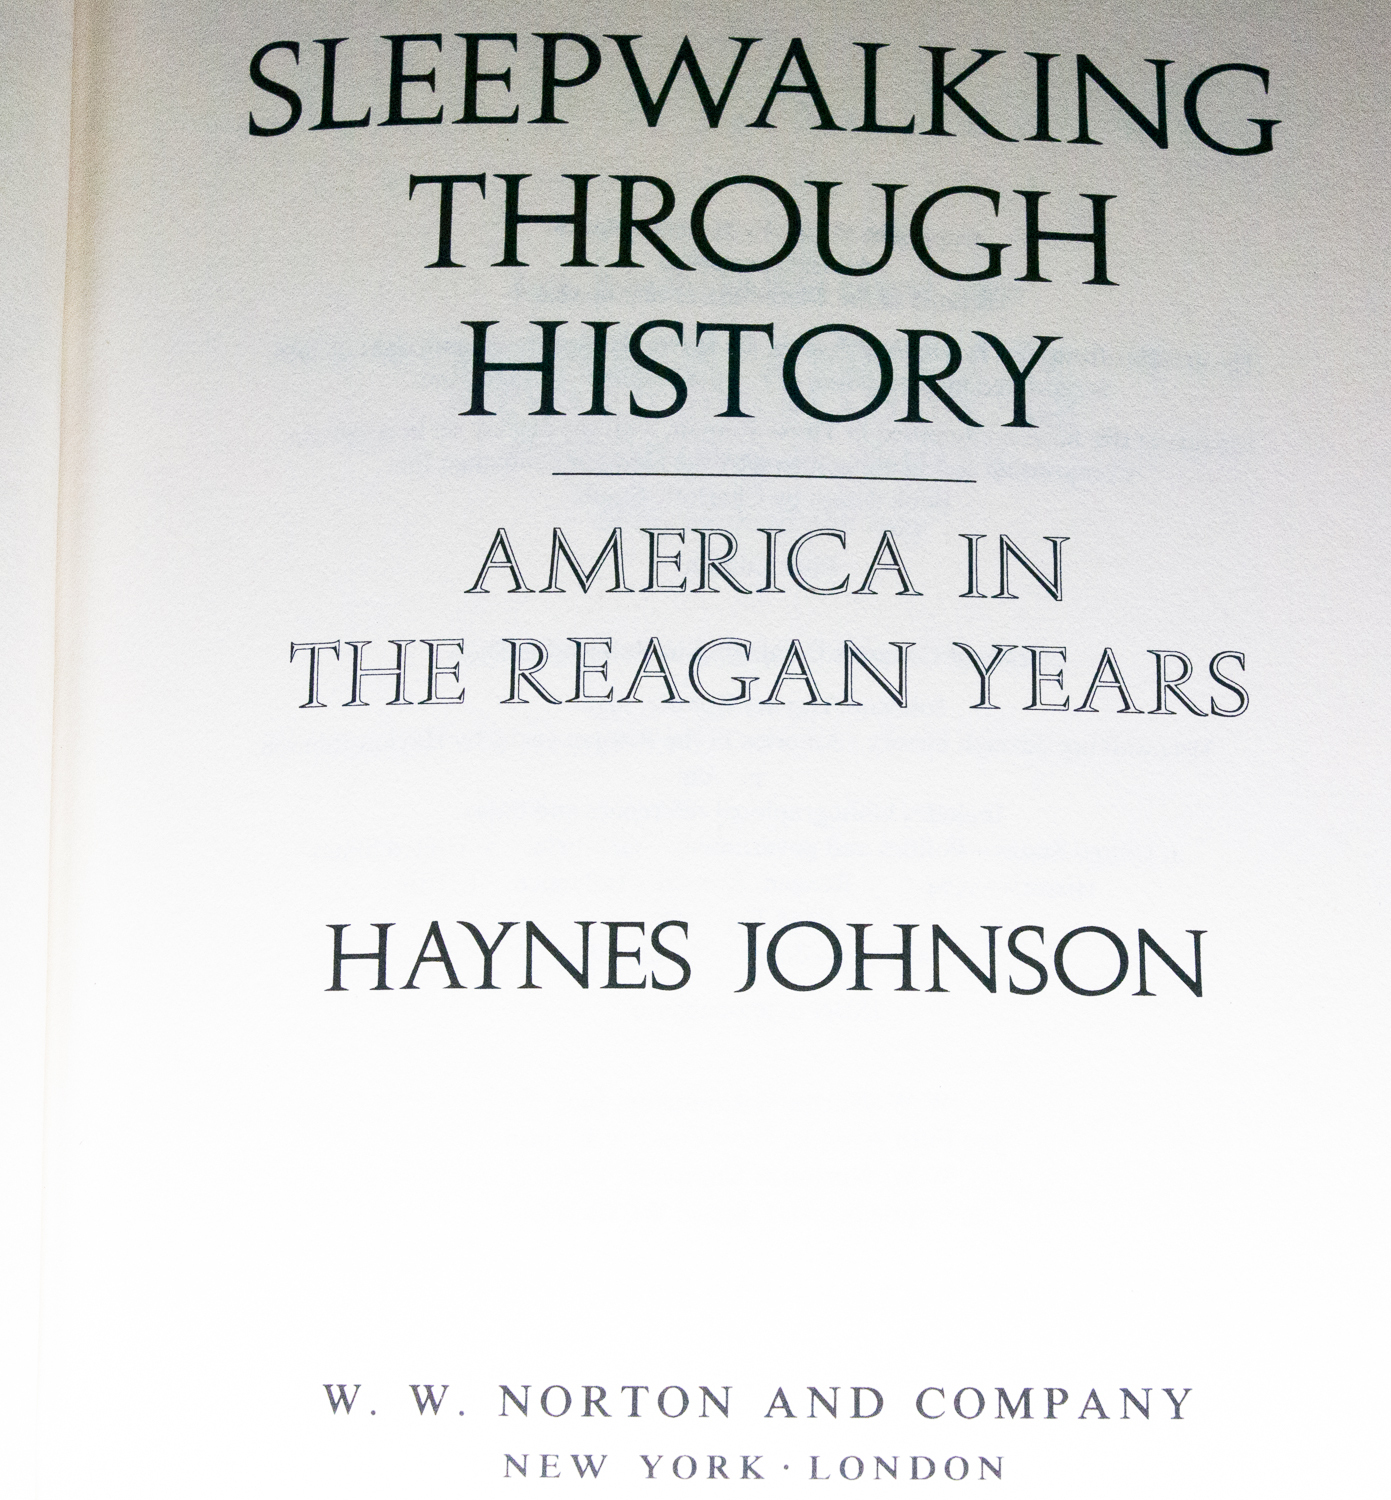 1991 1st Edition, 1st Printing Signed Book - Sleepwalking Through History